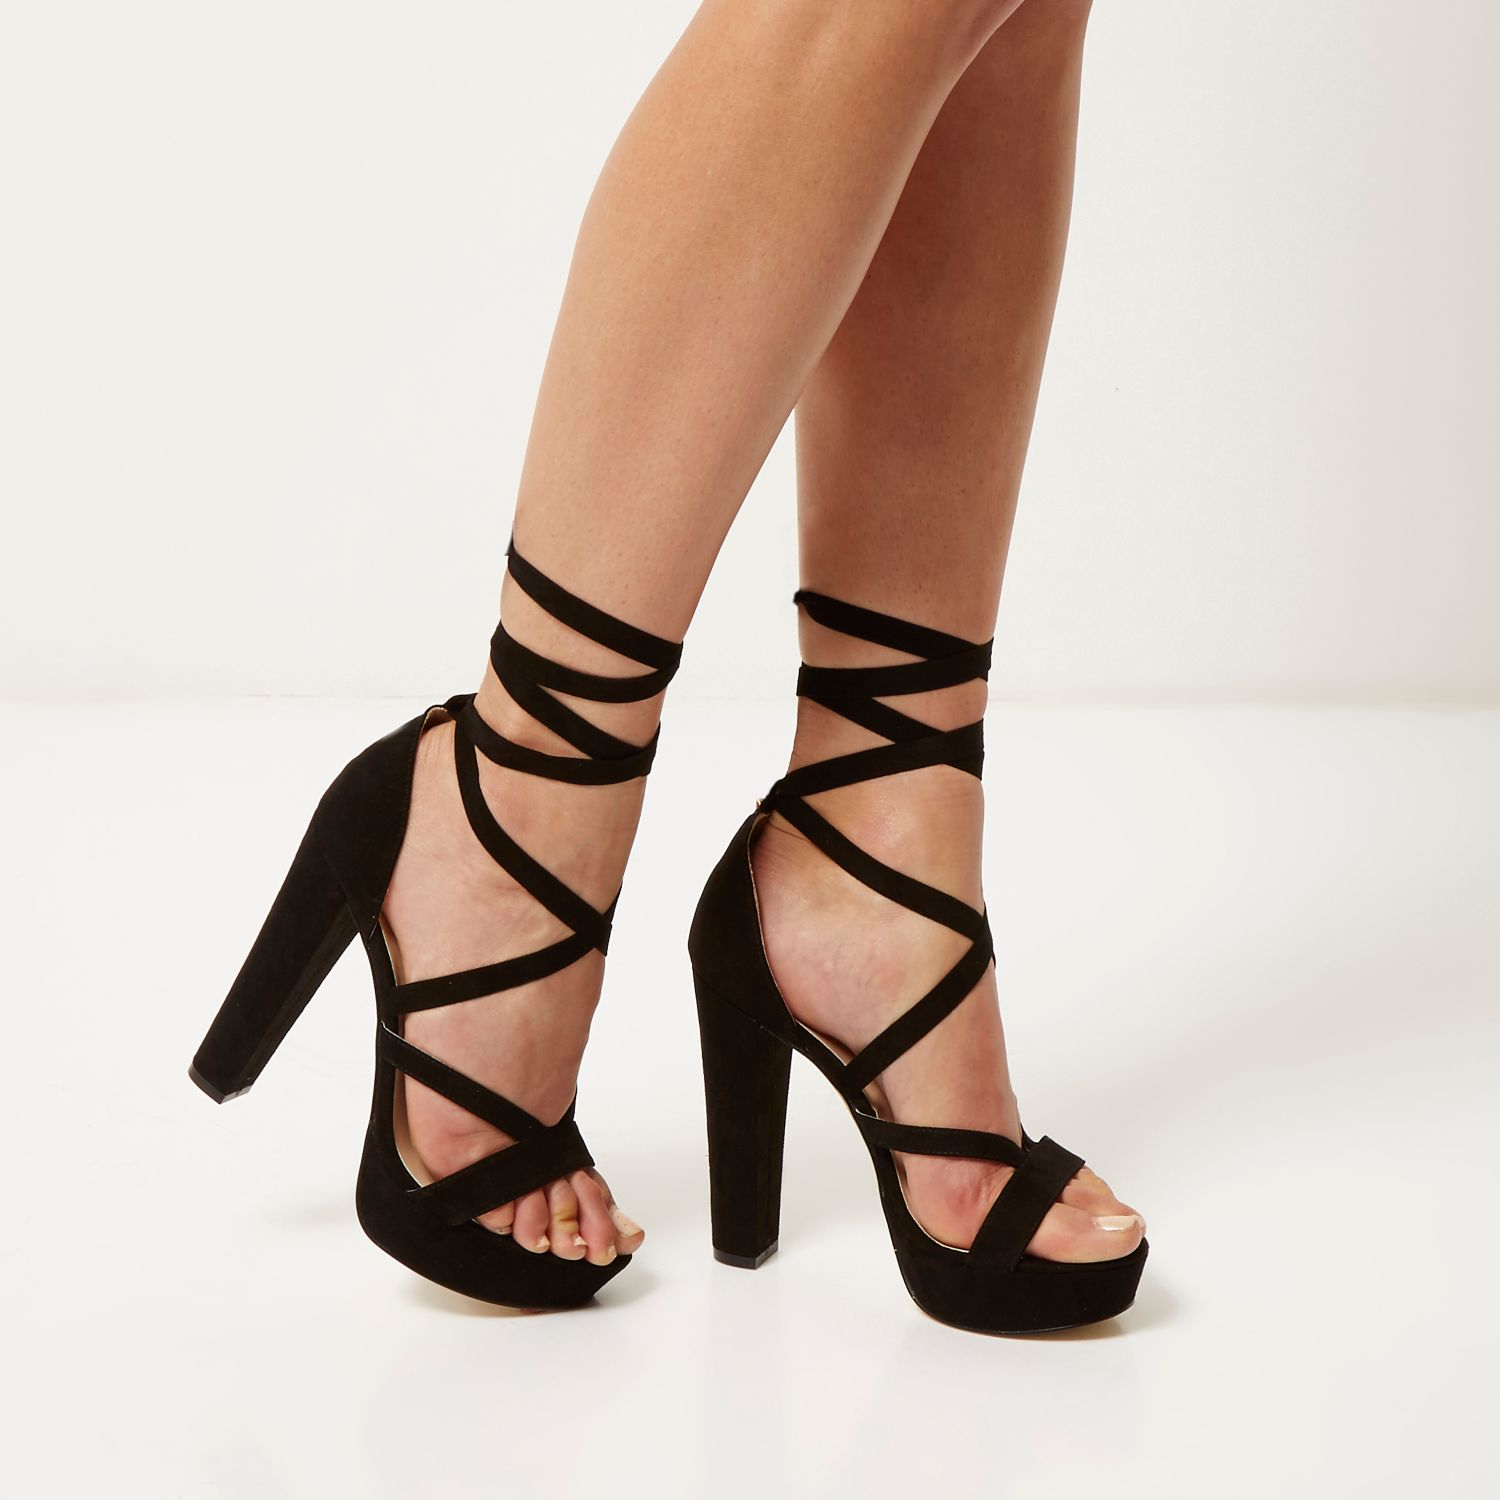 Black Lace Up Platform Heels ALmvLaBy